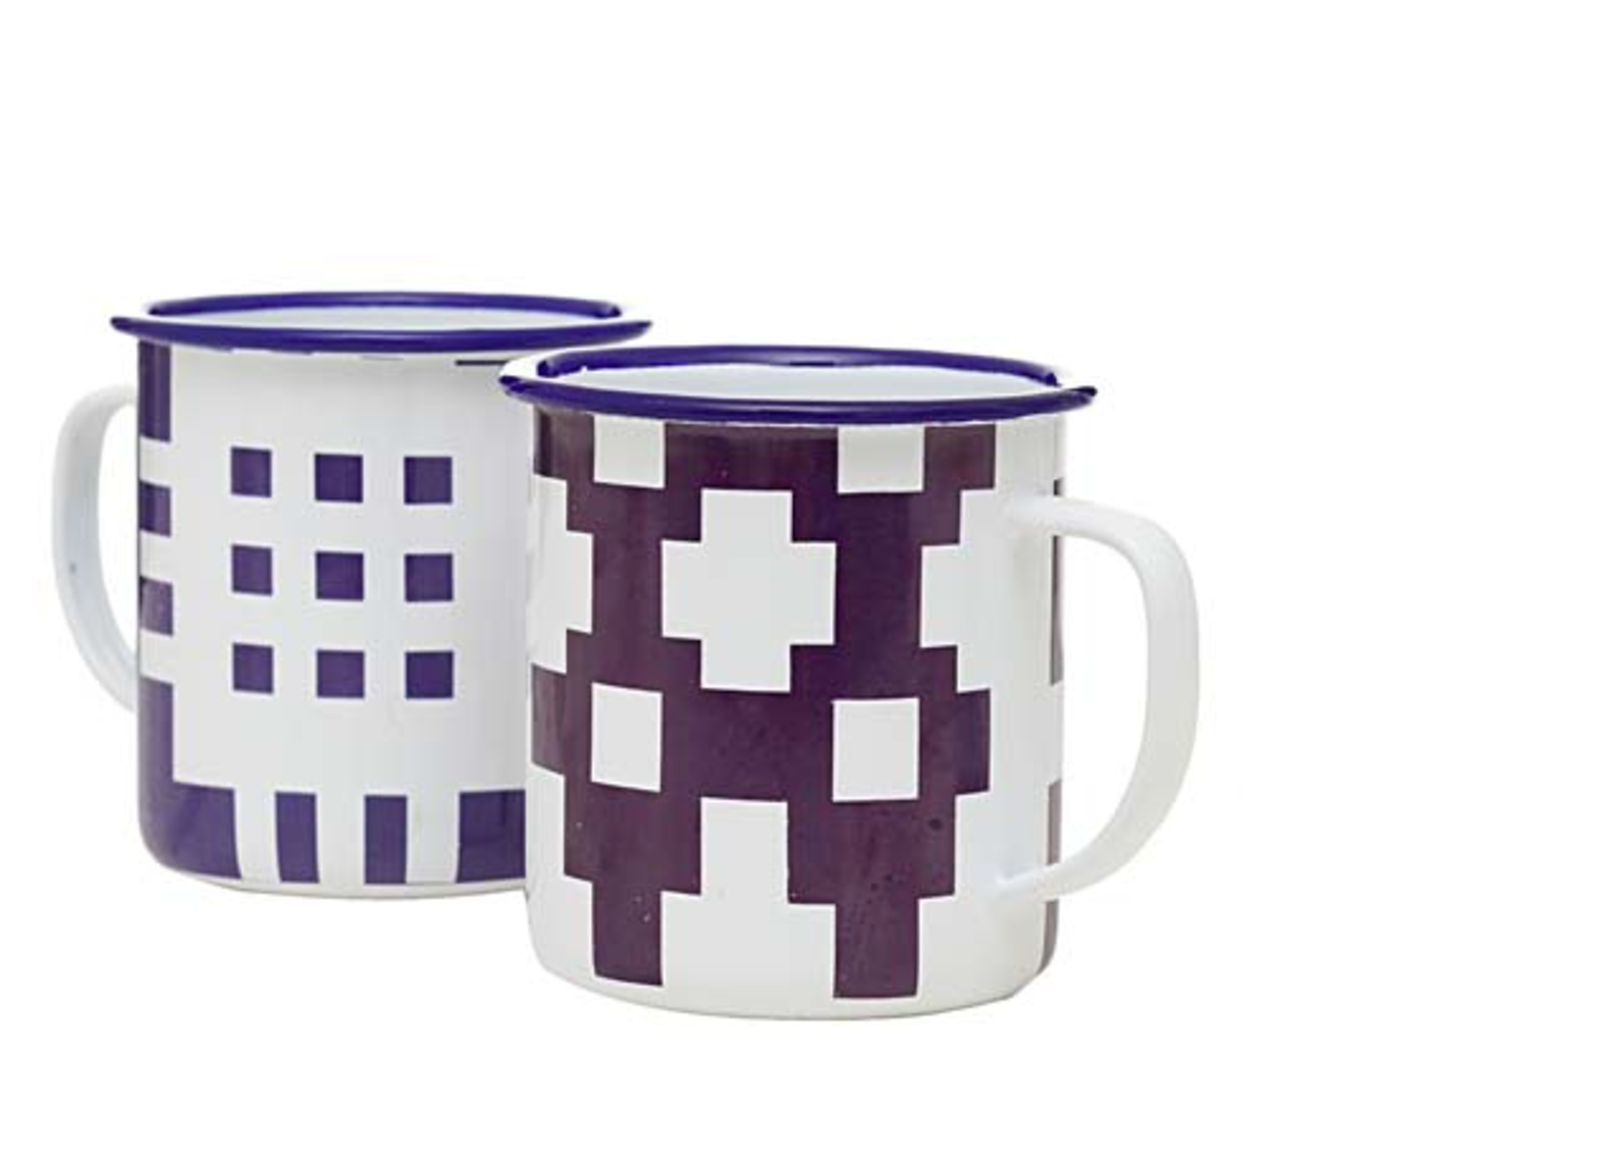 """BLODWEN MUGS  You must of course offer coffee at the end of a triumphant meal. These blue and white geometrically patterned enamelware mugs in a modern Welsh design are perfect for just that or any old time a hot beverage would hit the spot.  Search """"jansen co my mug espresso saucer"""" from Holiday Gift Guide: For The Table"""